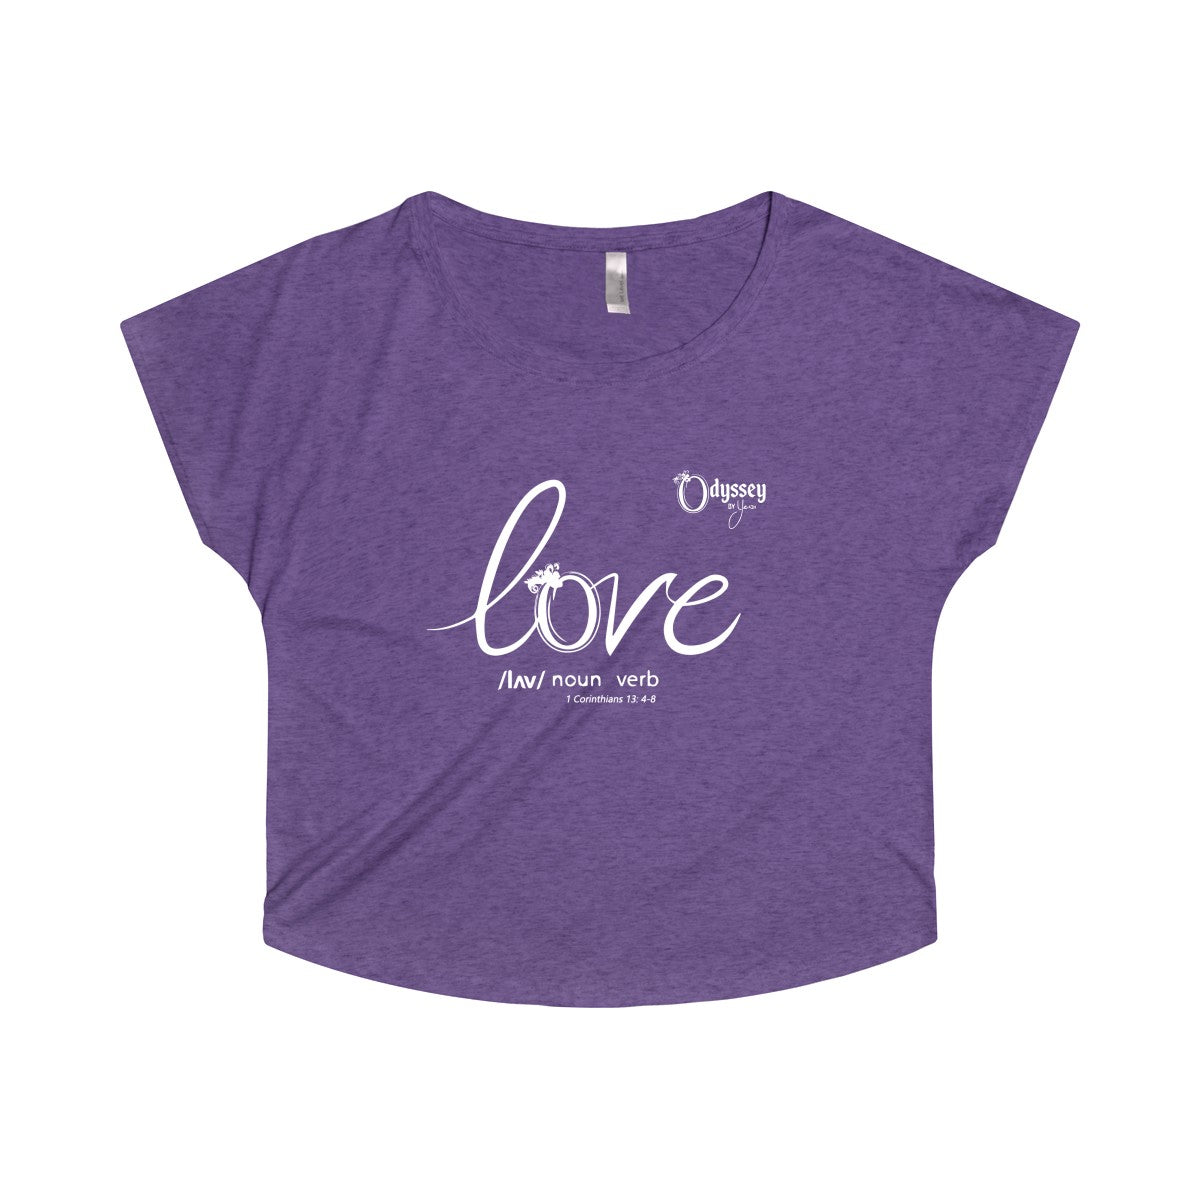 Odyssey Love Women's Off The Shoulder Tee